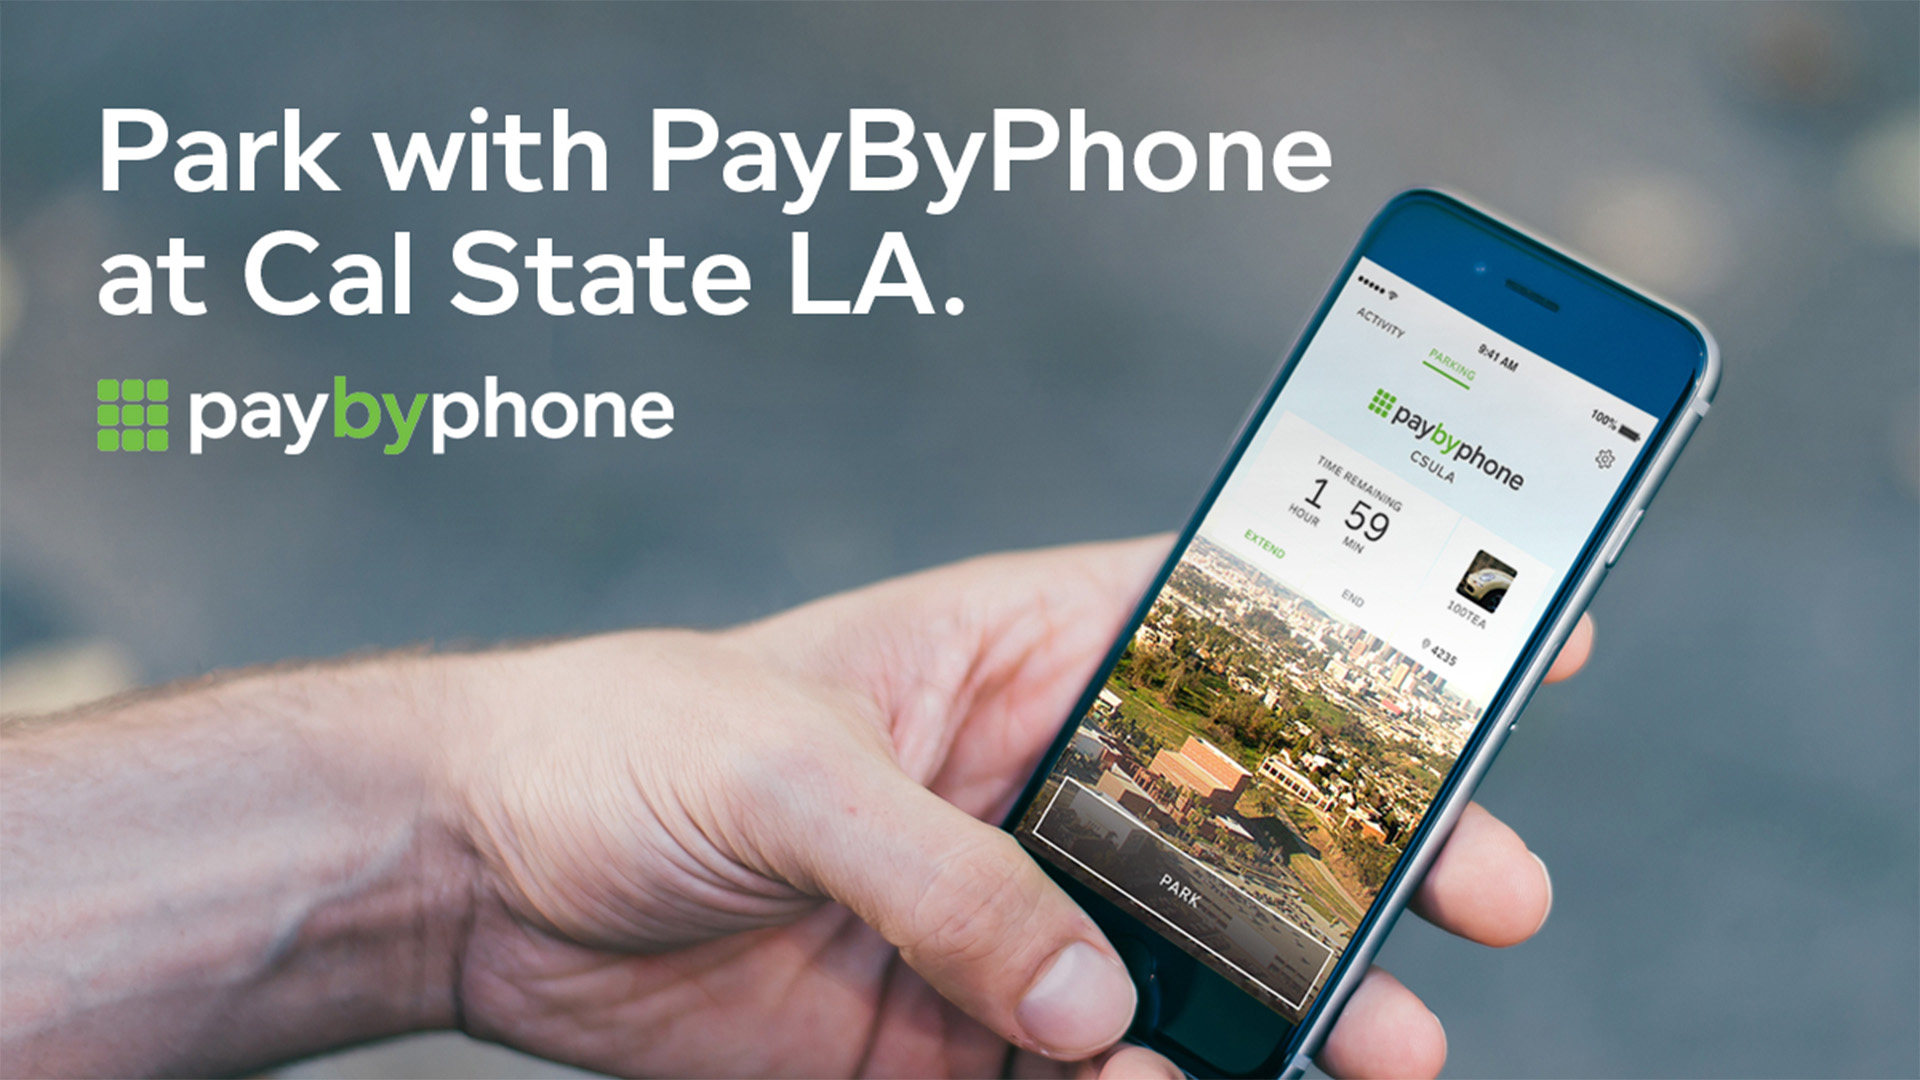 Pay by Phone now available throughout campus